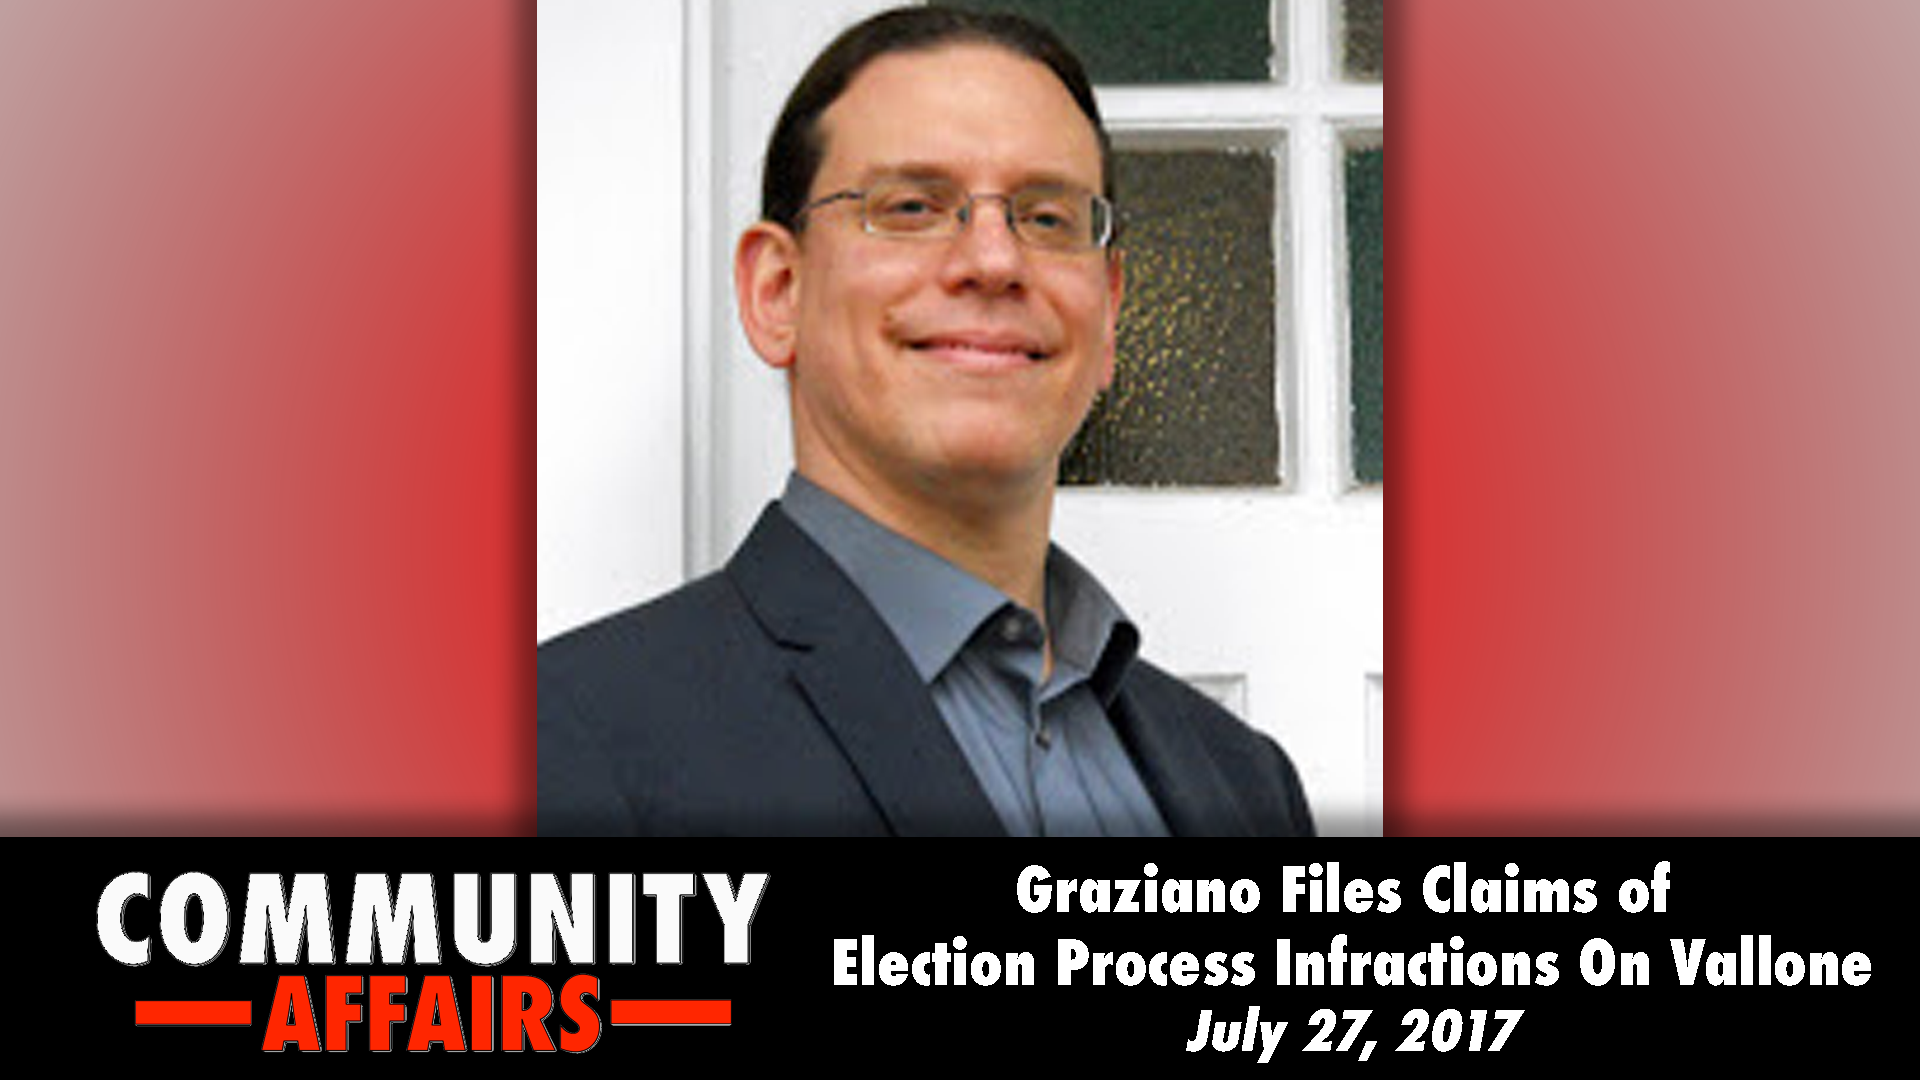 Graziano Files Claims of Election Process Infractions On Vallone